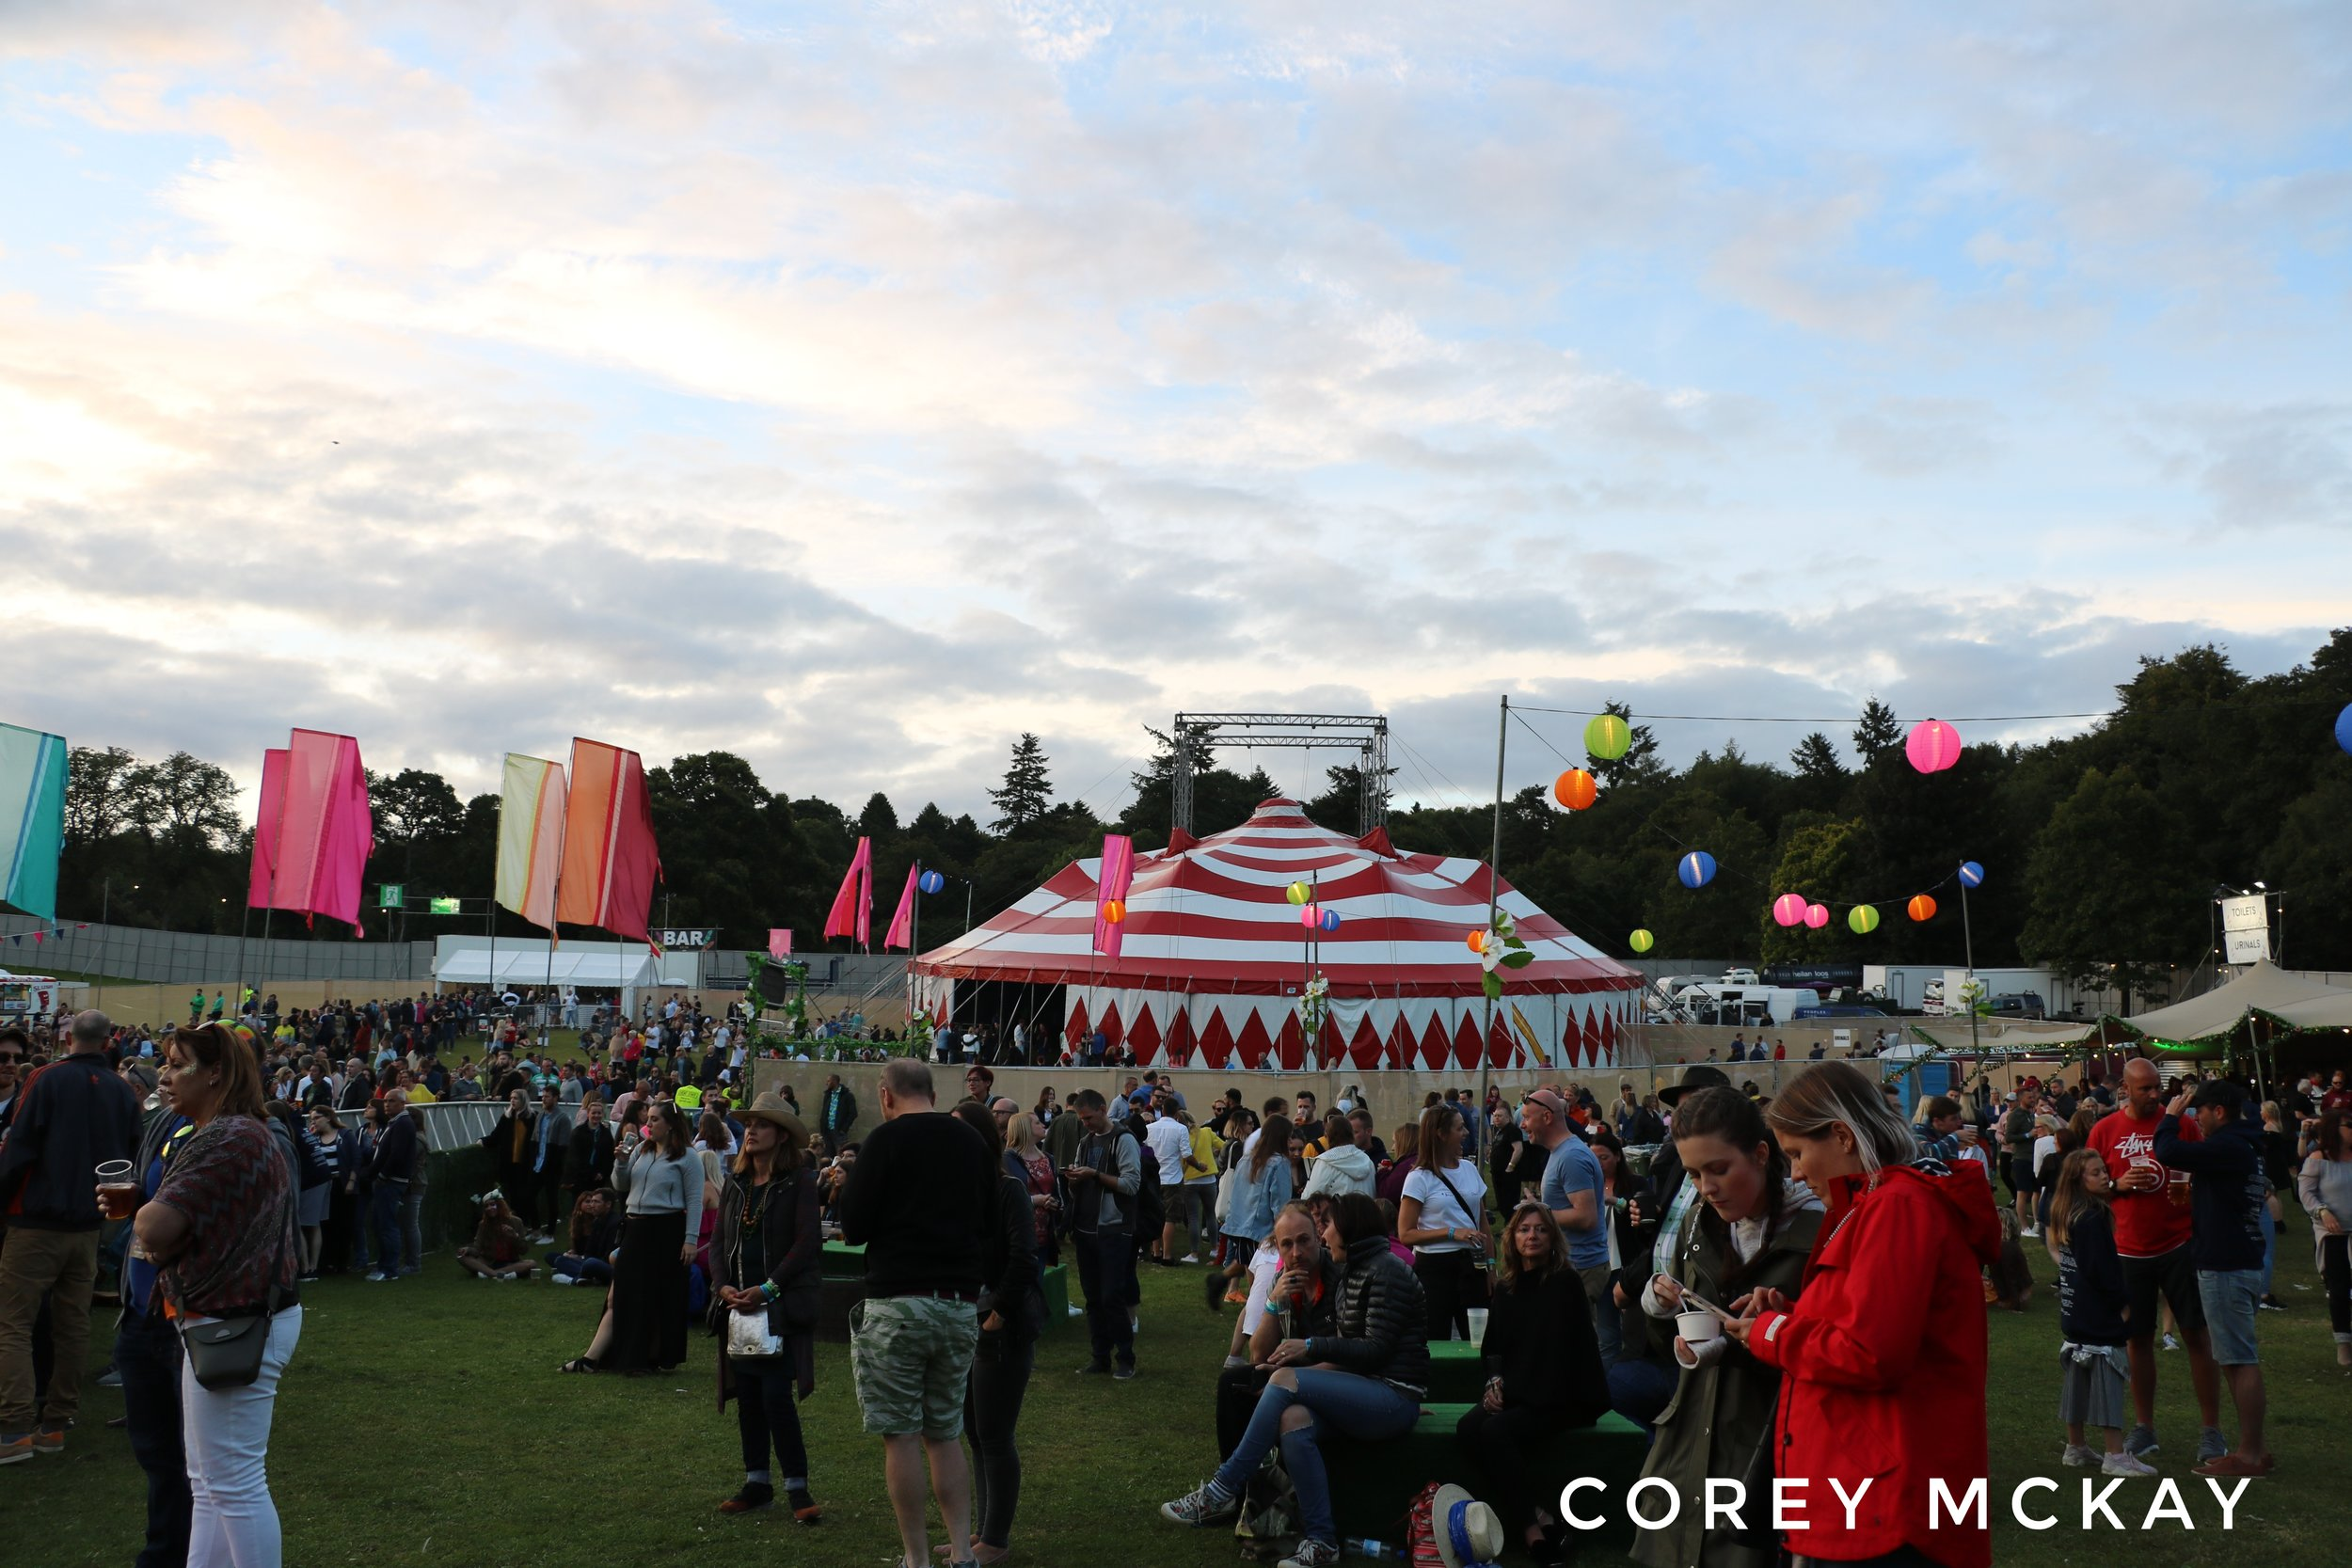 CARNIVAL FIFTY SIX FESTIVAL 2017 - CAMPERDOWN PARK, DUNDEE  PICTURE BY: COREY MCKAY PHOTOGRAPHY